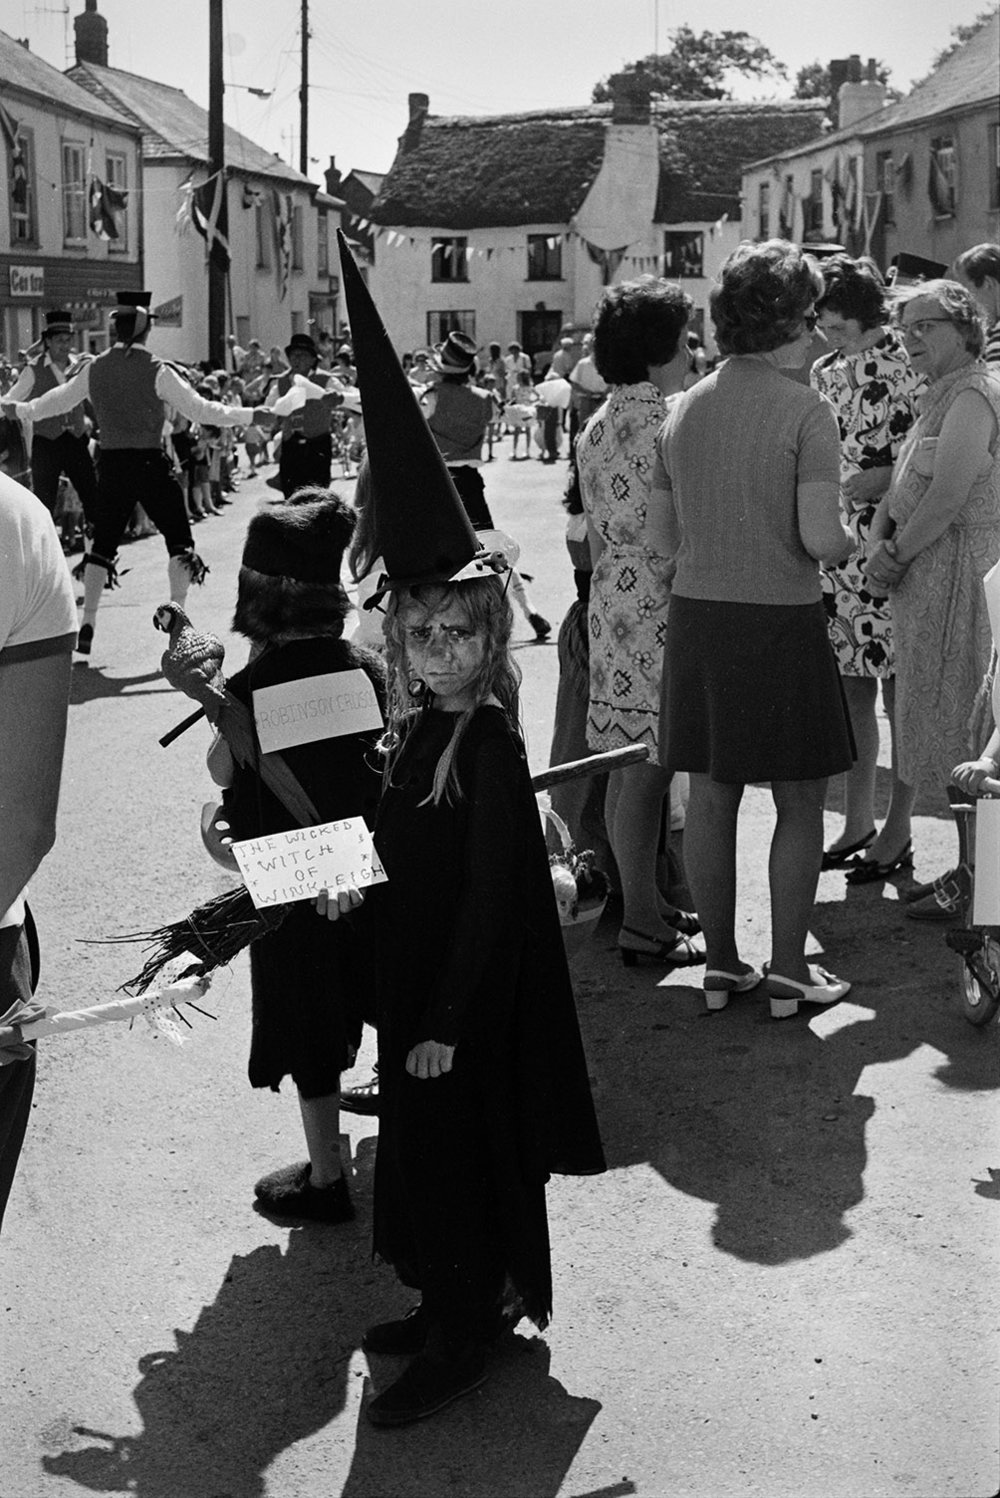 Fancy dress  - 'The wicked witch of Winkleigh', Winkleigh, July 1972